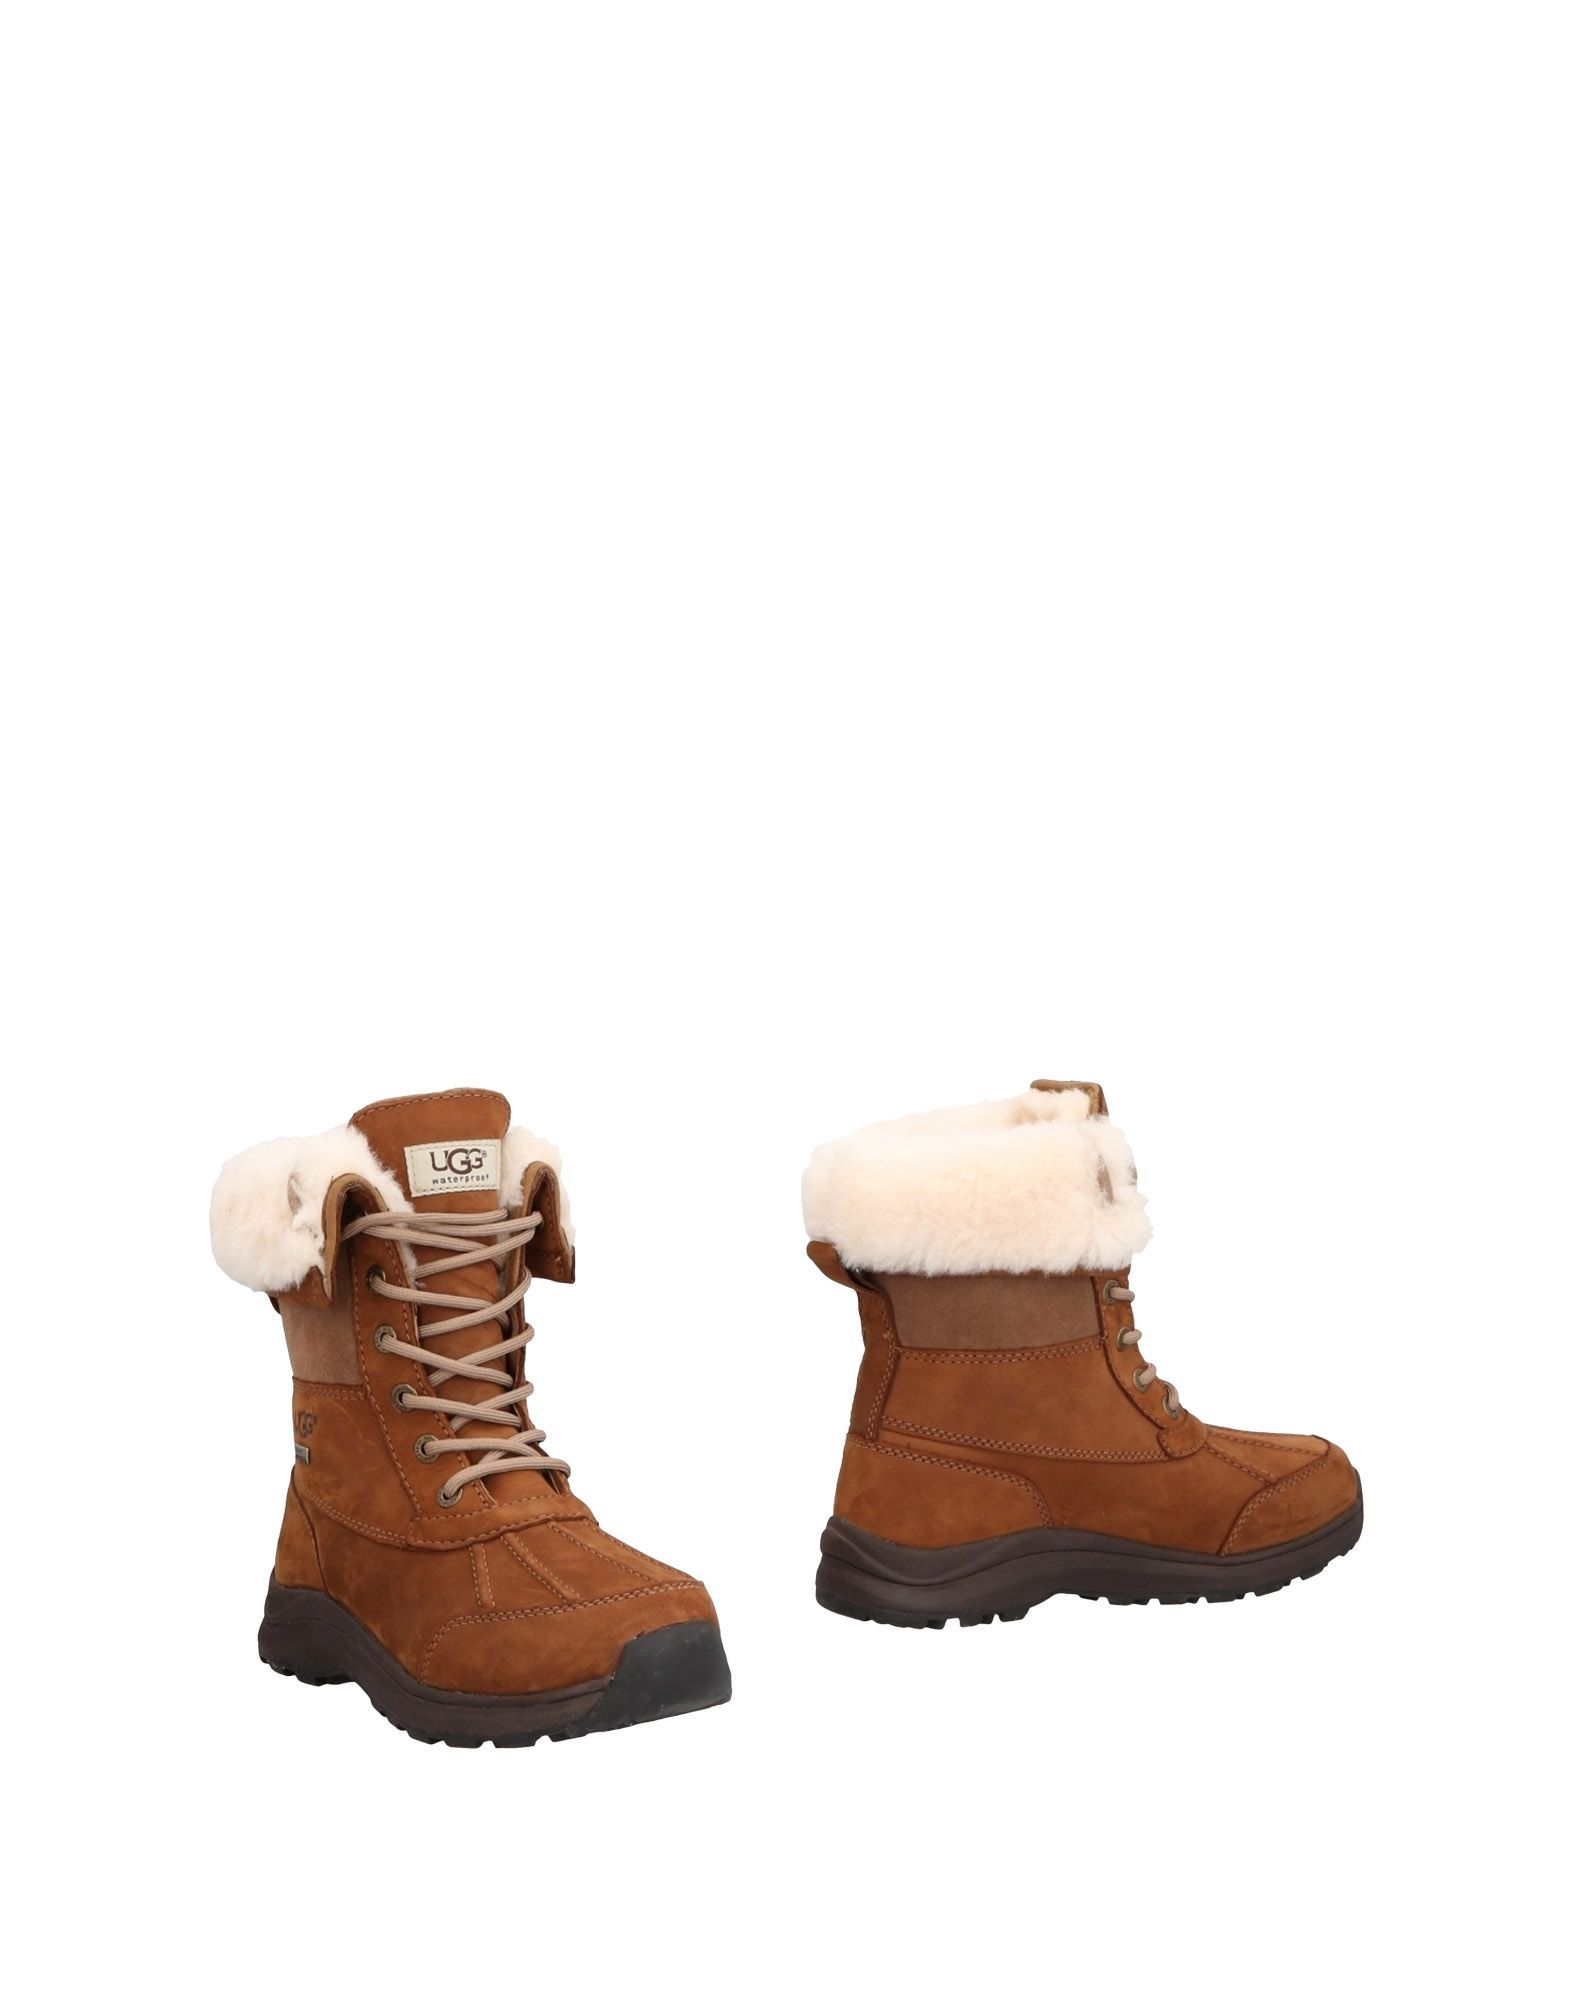 Ugg Australia Camel Leather Lace Up Boots